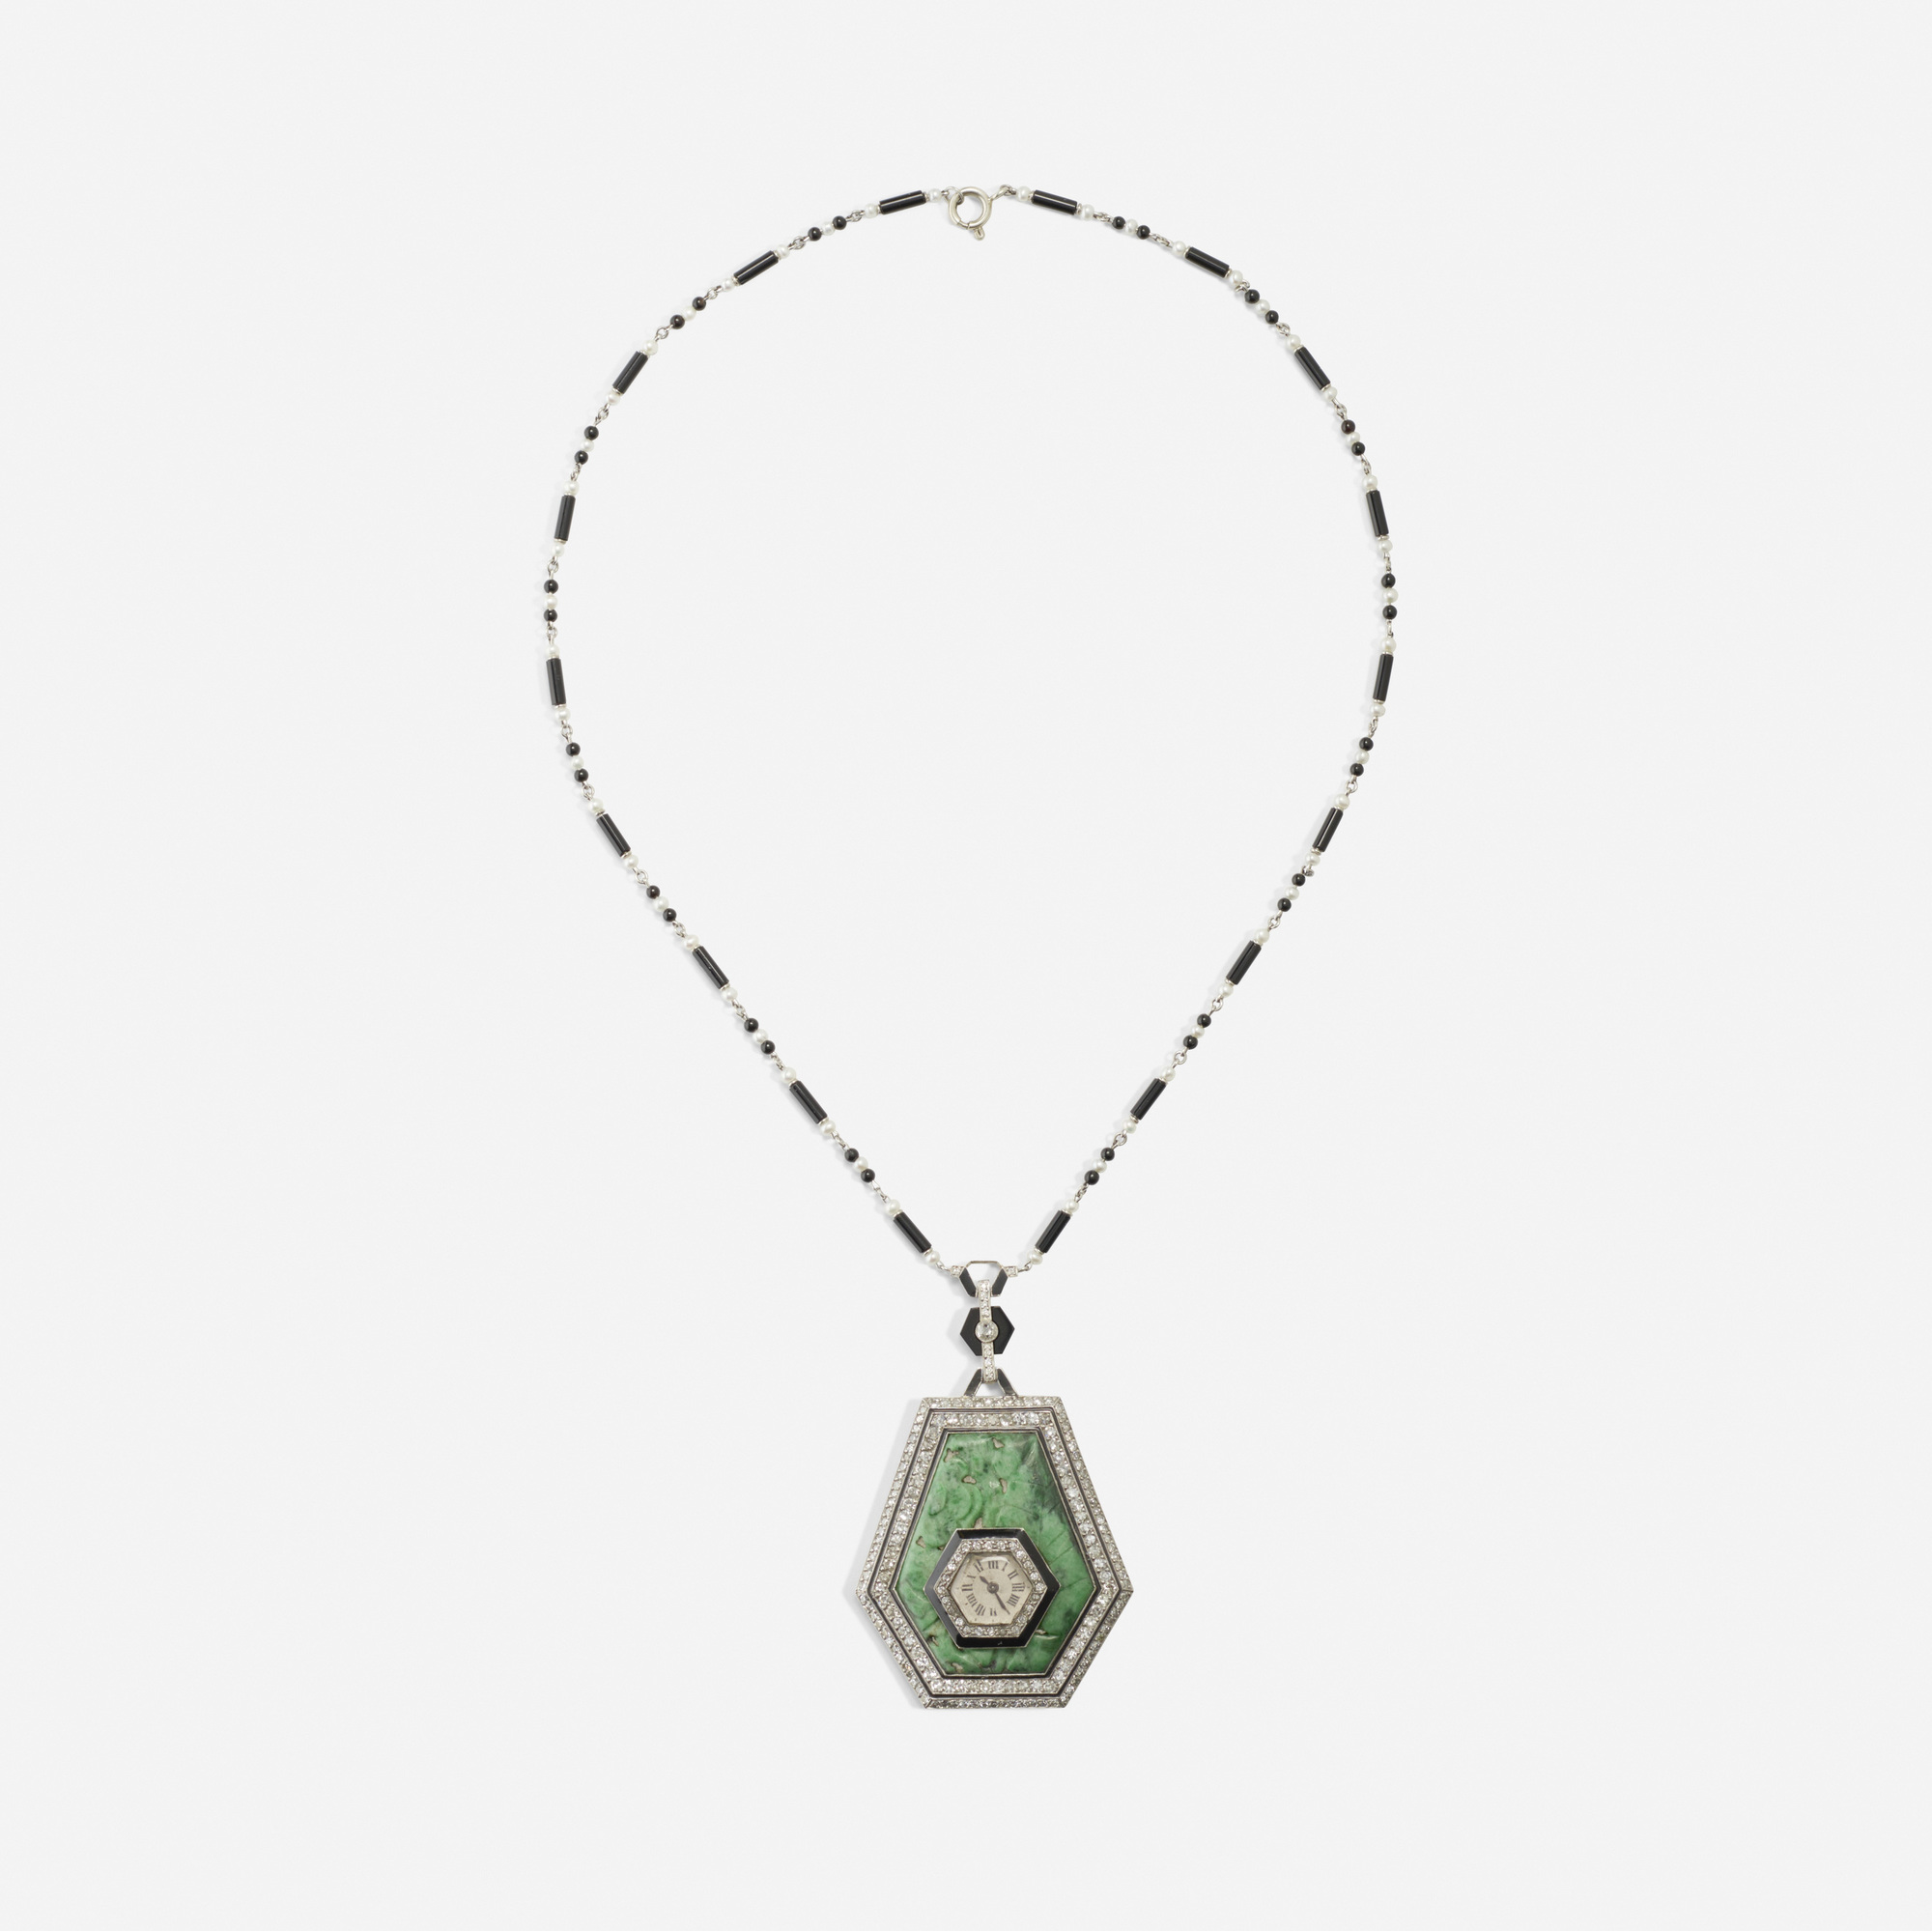 130: Art Deco / A platinum, jade, diamond and onyx watch necklace (2 of 2)